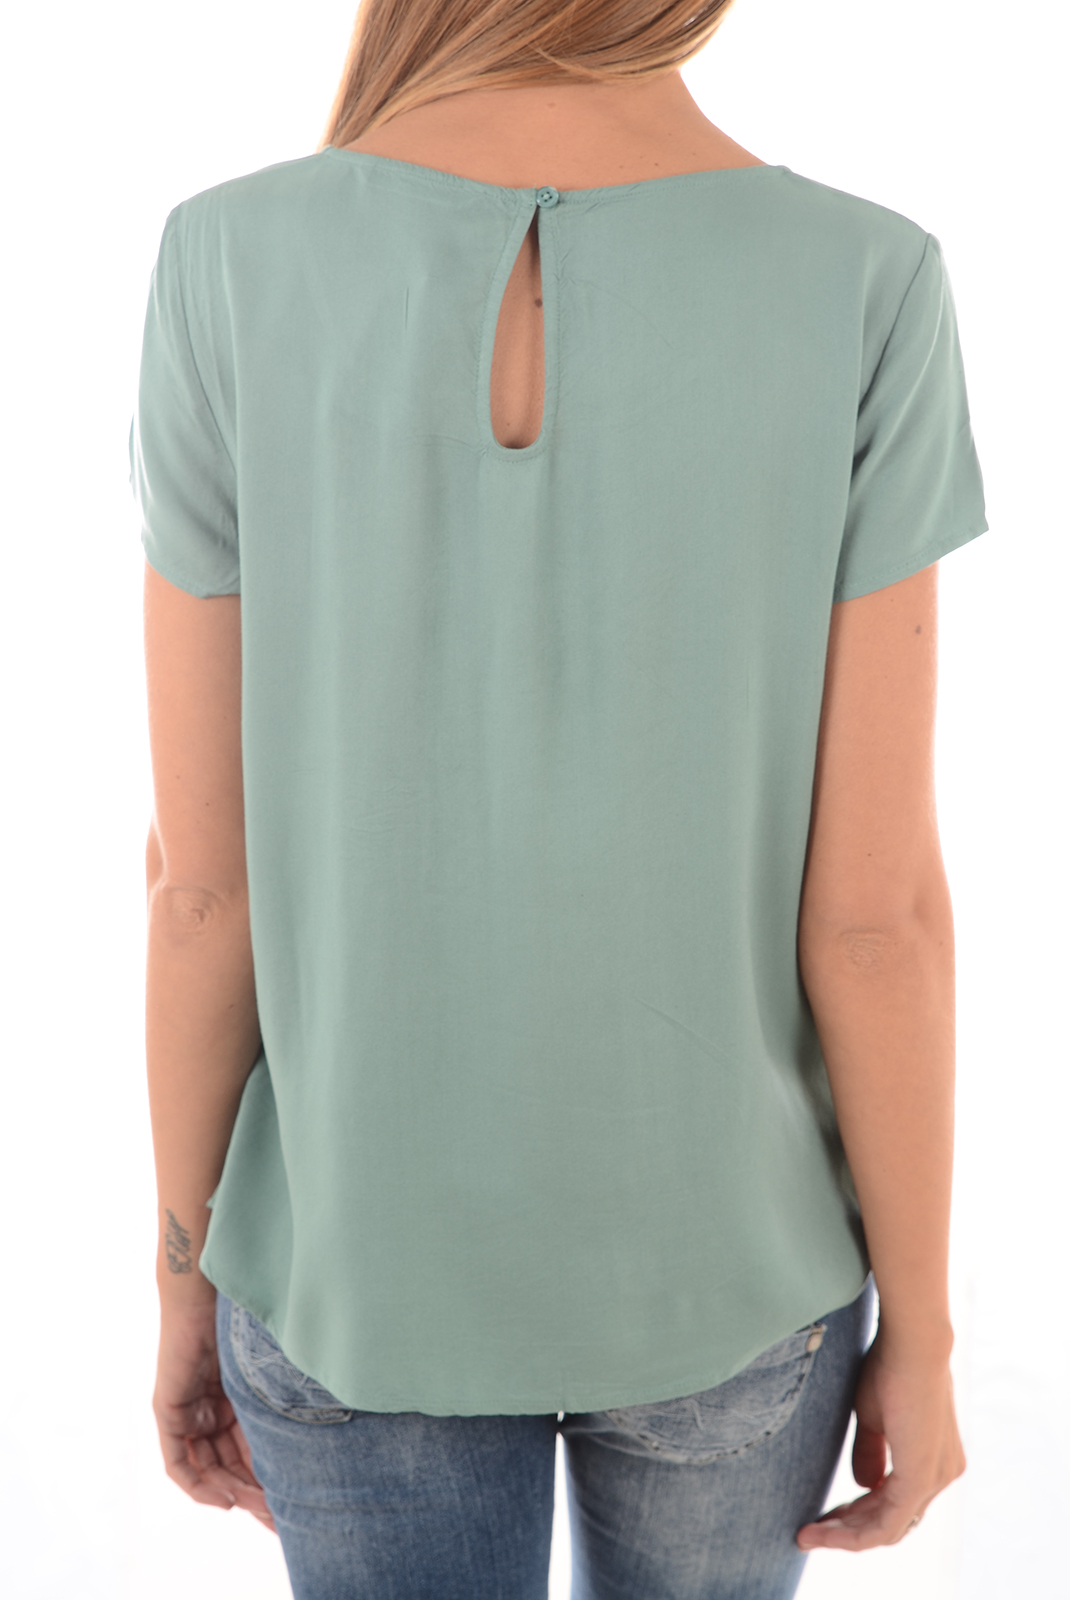 Tops & Tee shirts  Only GEGGO SS TOP NOOS OIL BLUE